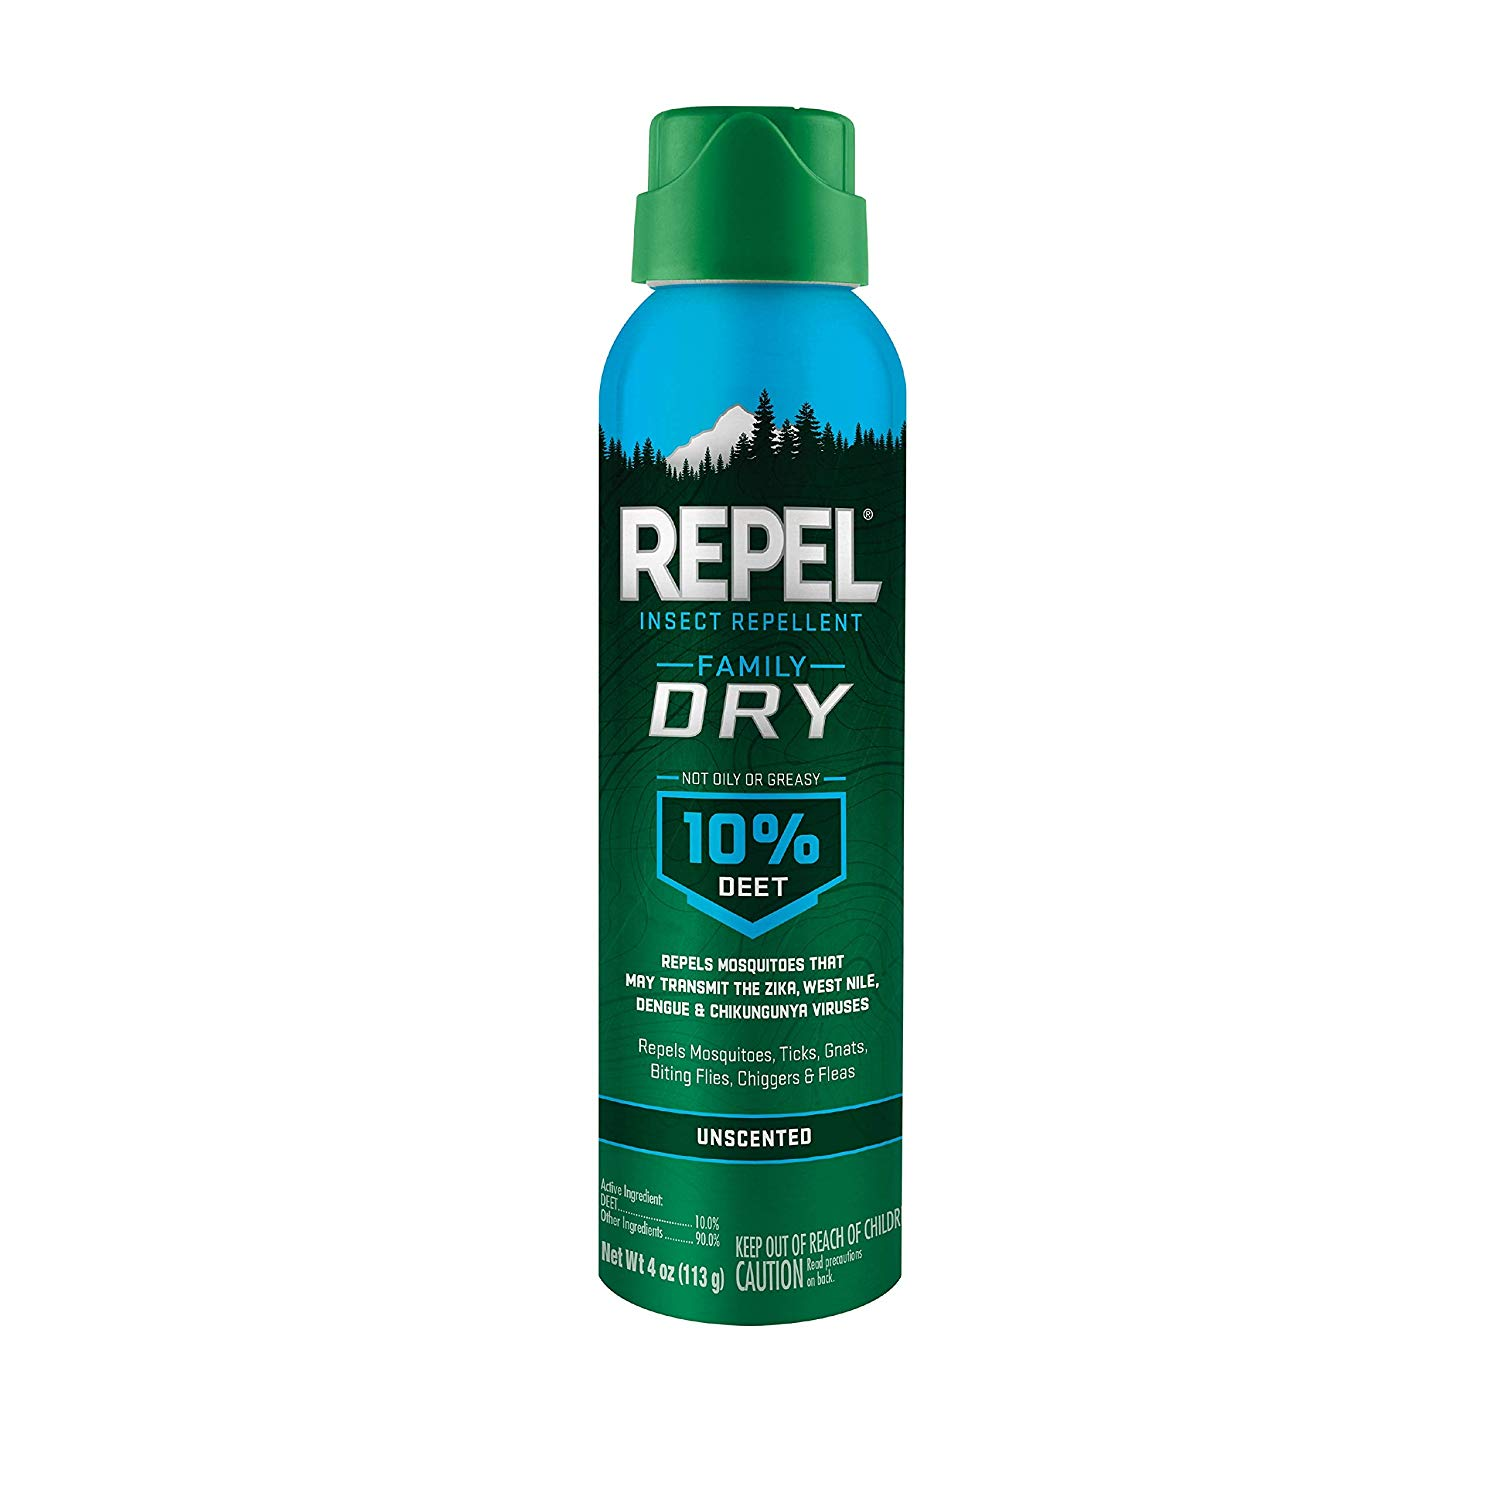 Repel Insect Repellent Family Dry